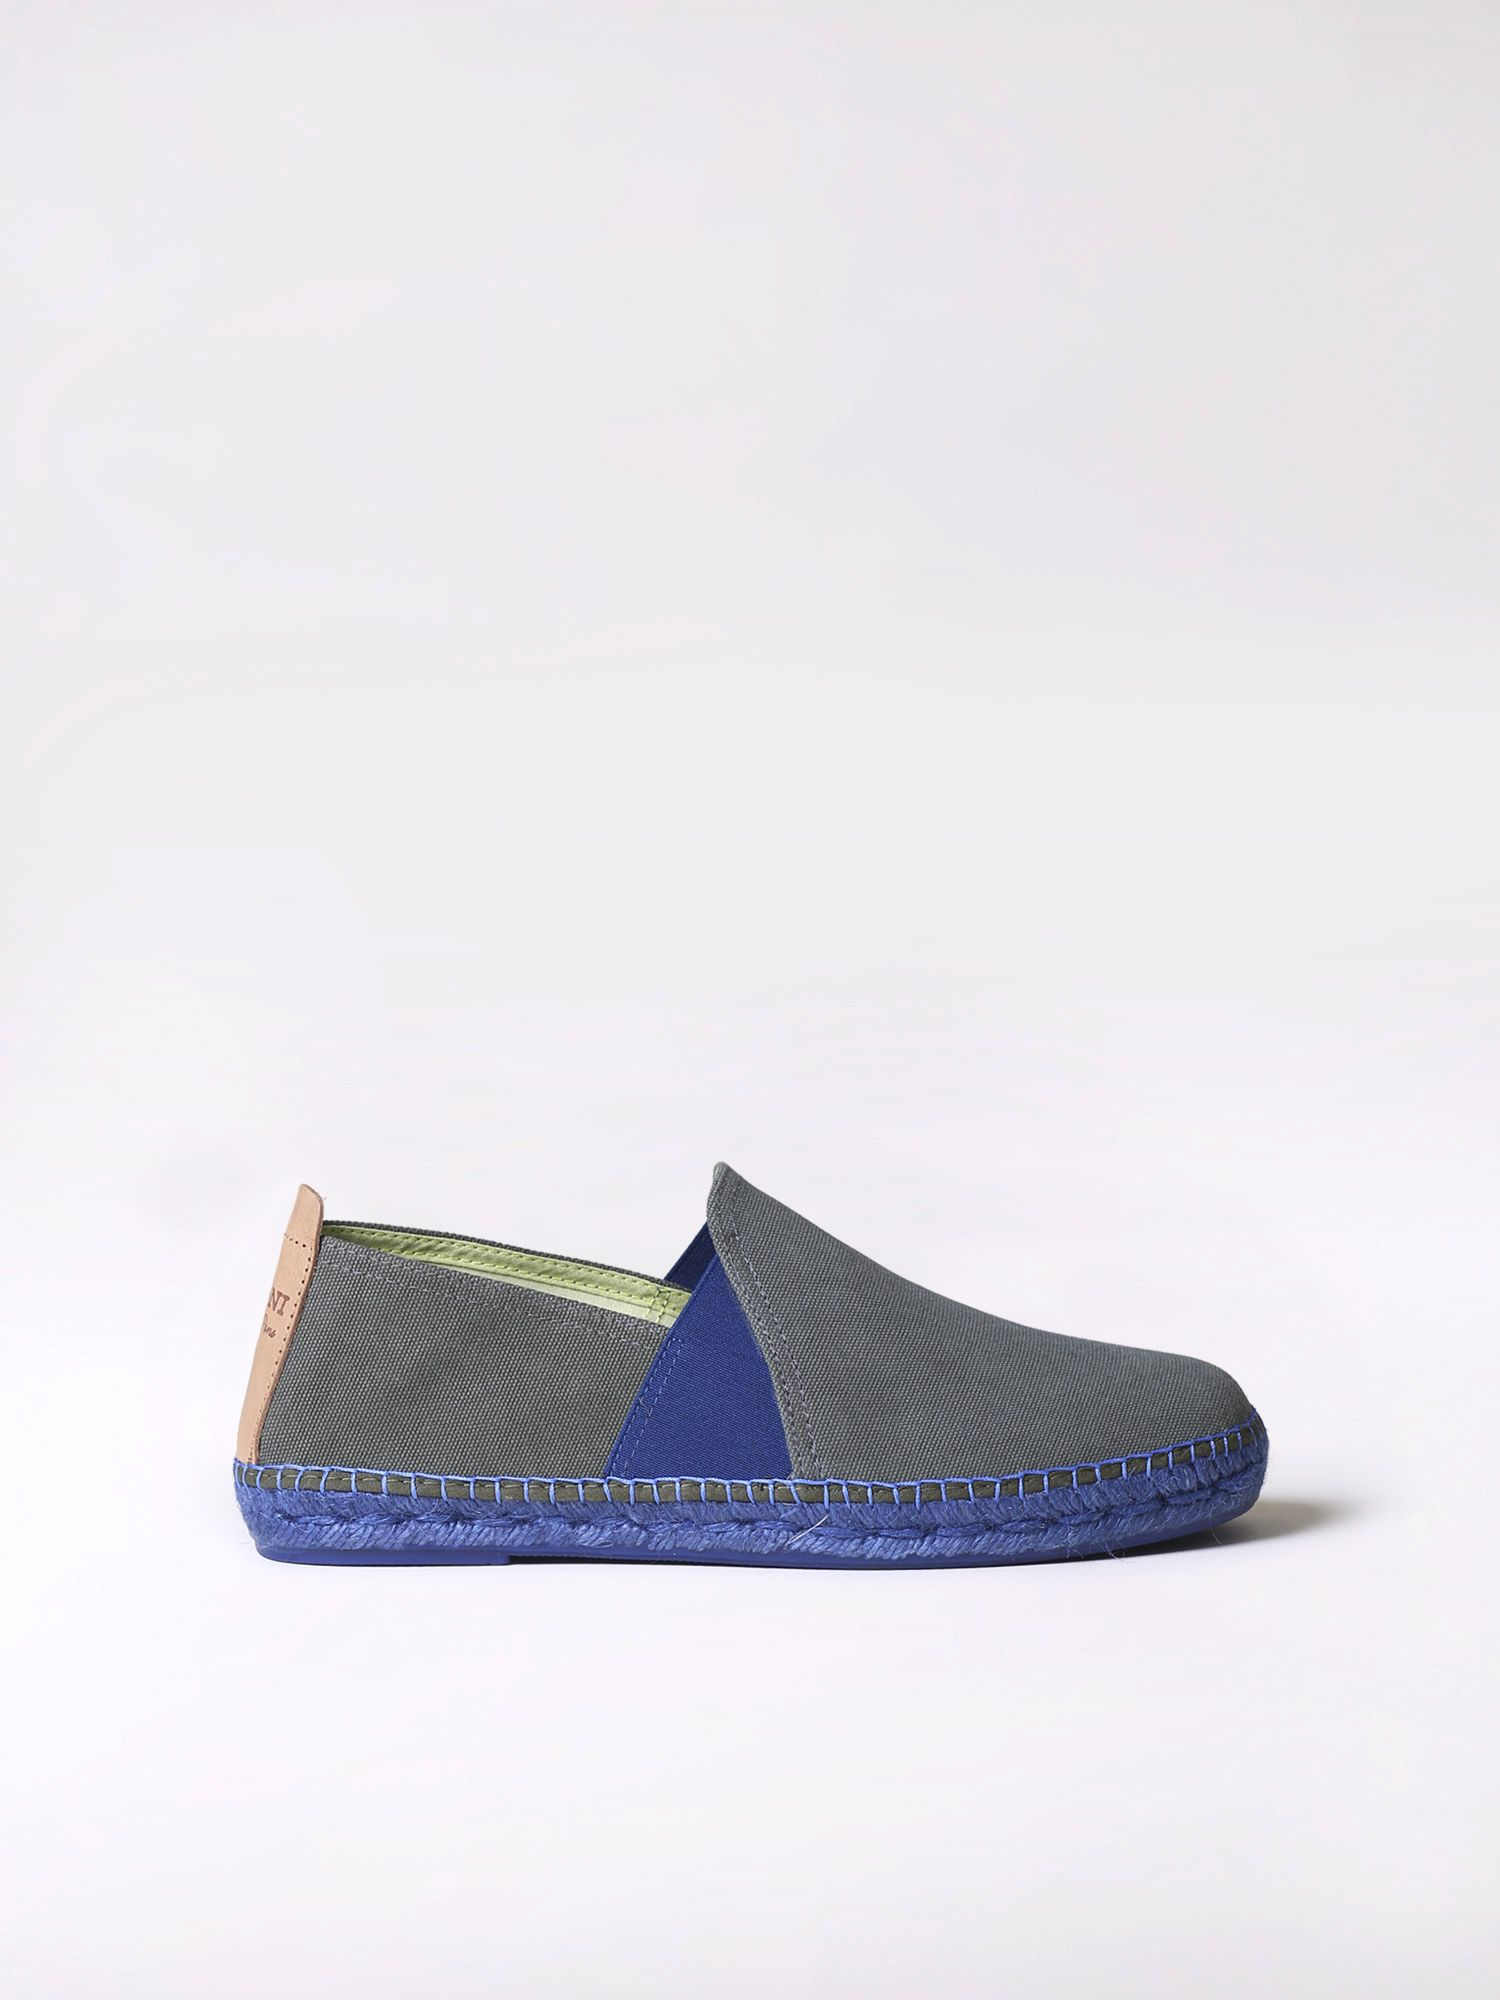 Slip on espadrilles - DAGO-CT